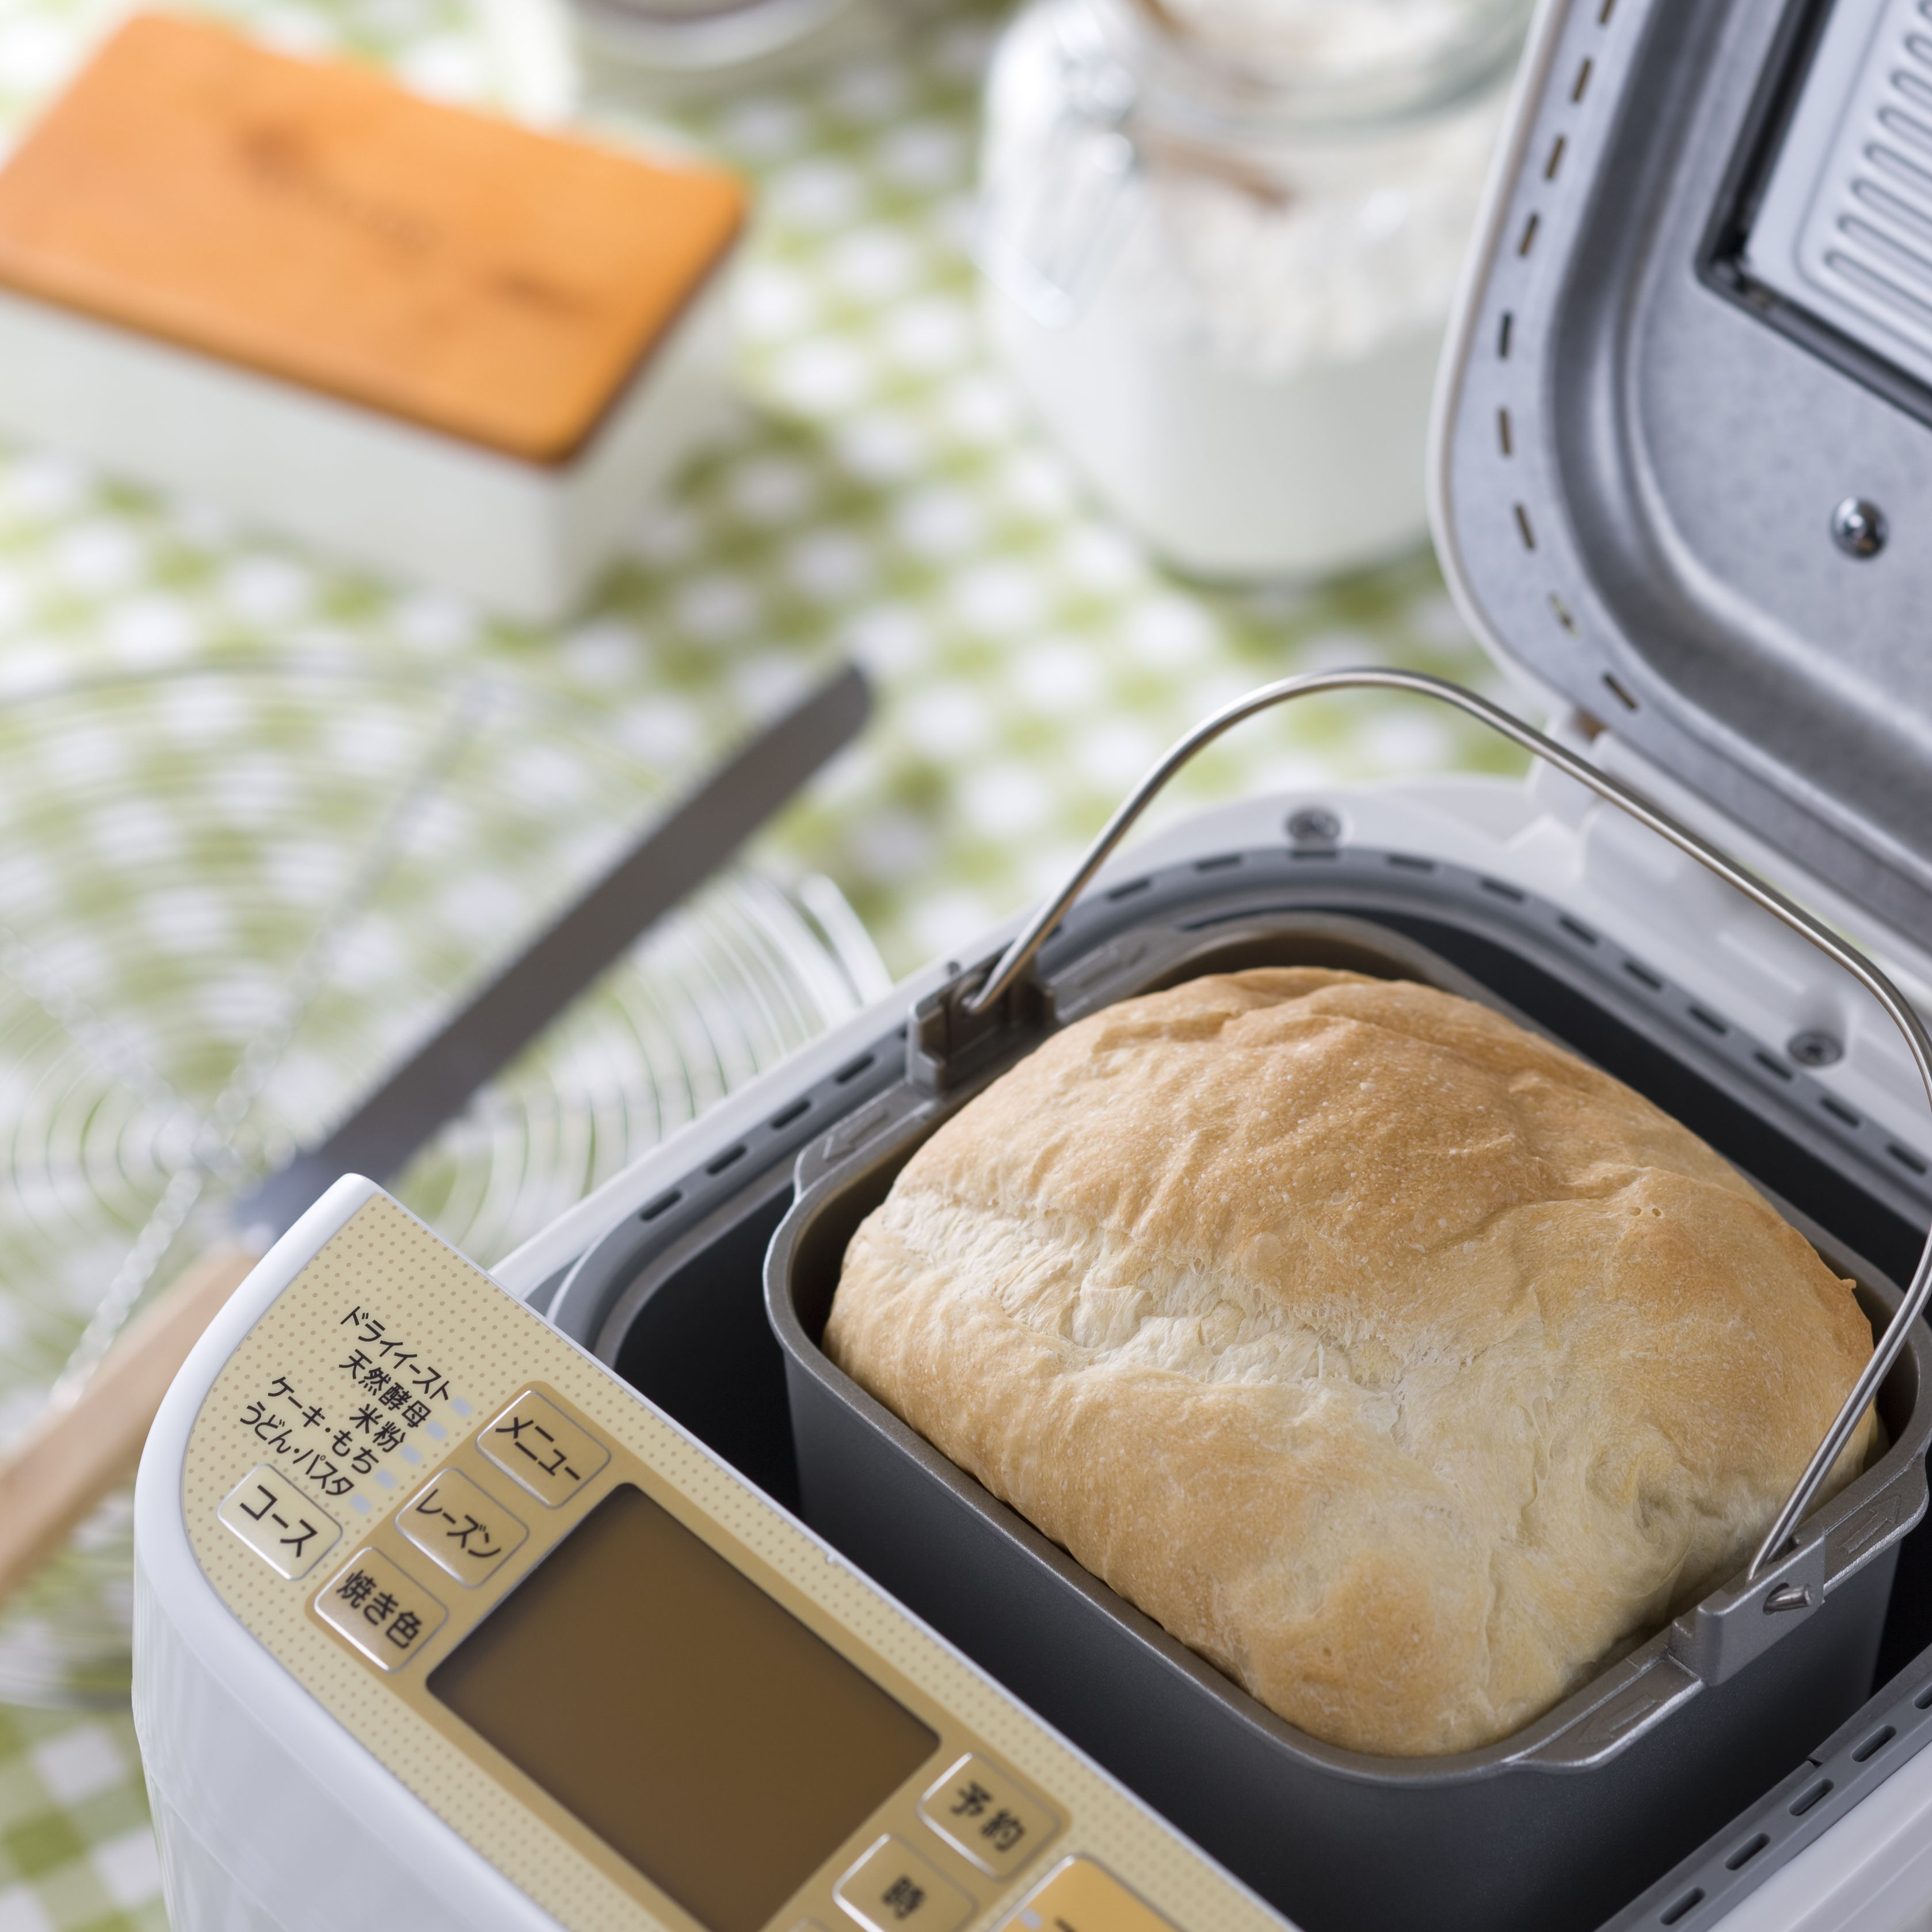 Bake Your Homemade Bread in the Machine vs. the Oven